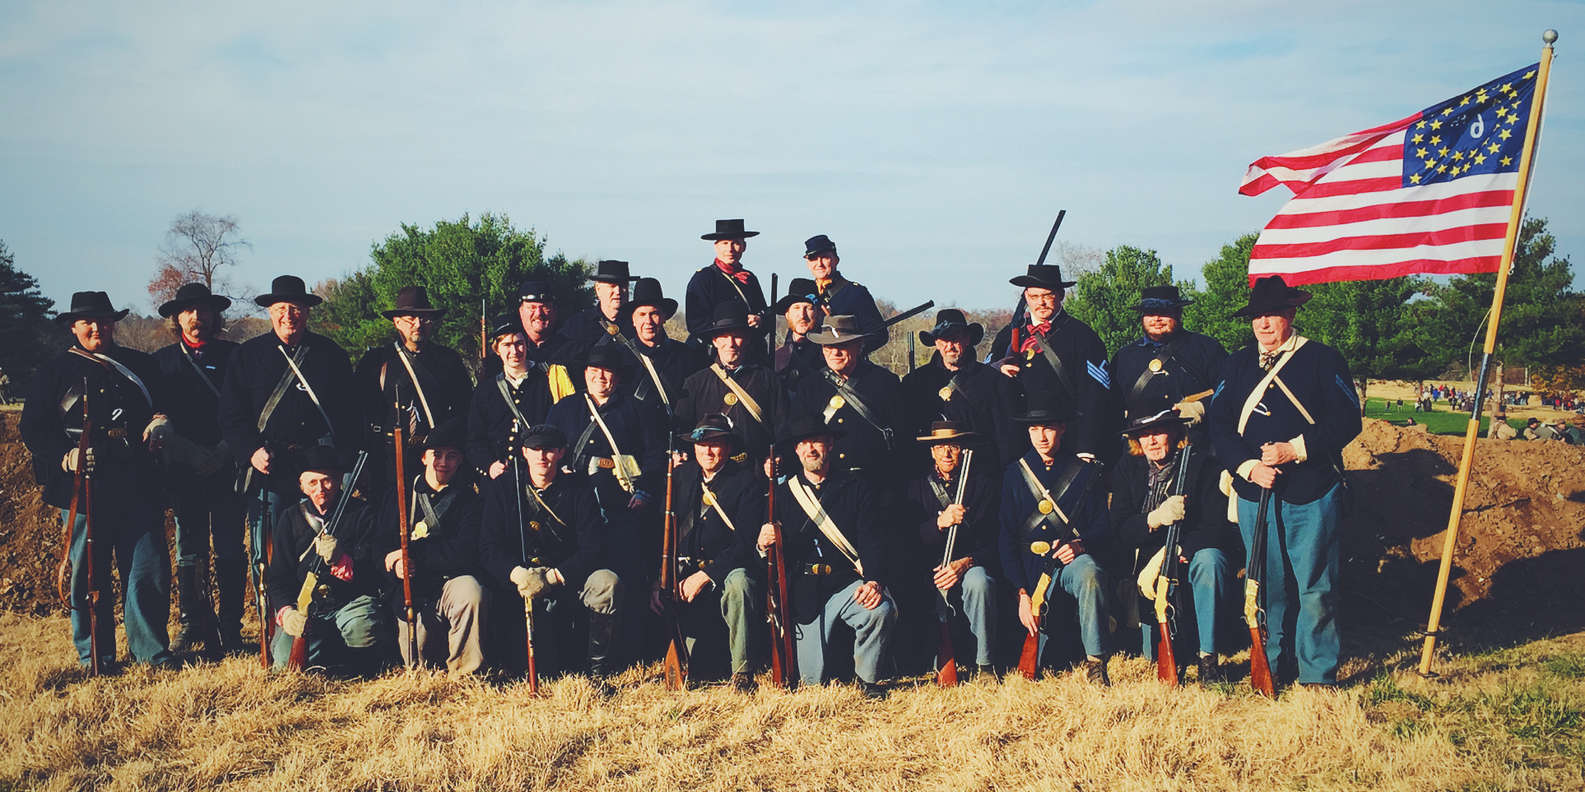 Learn About Civil War History